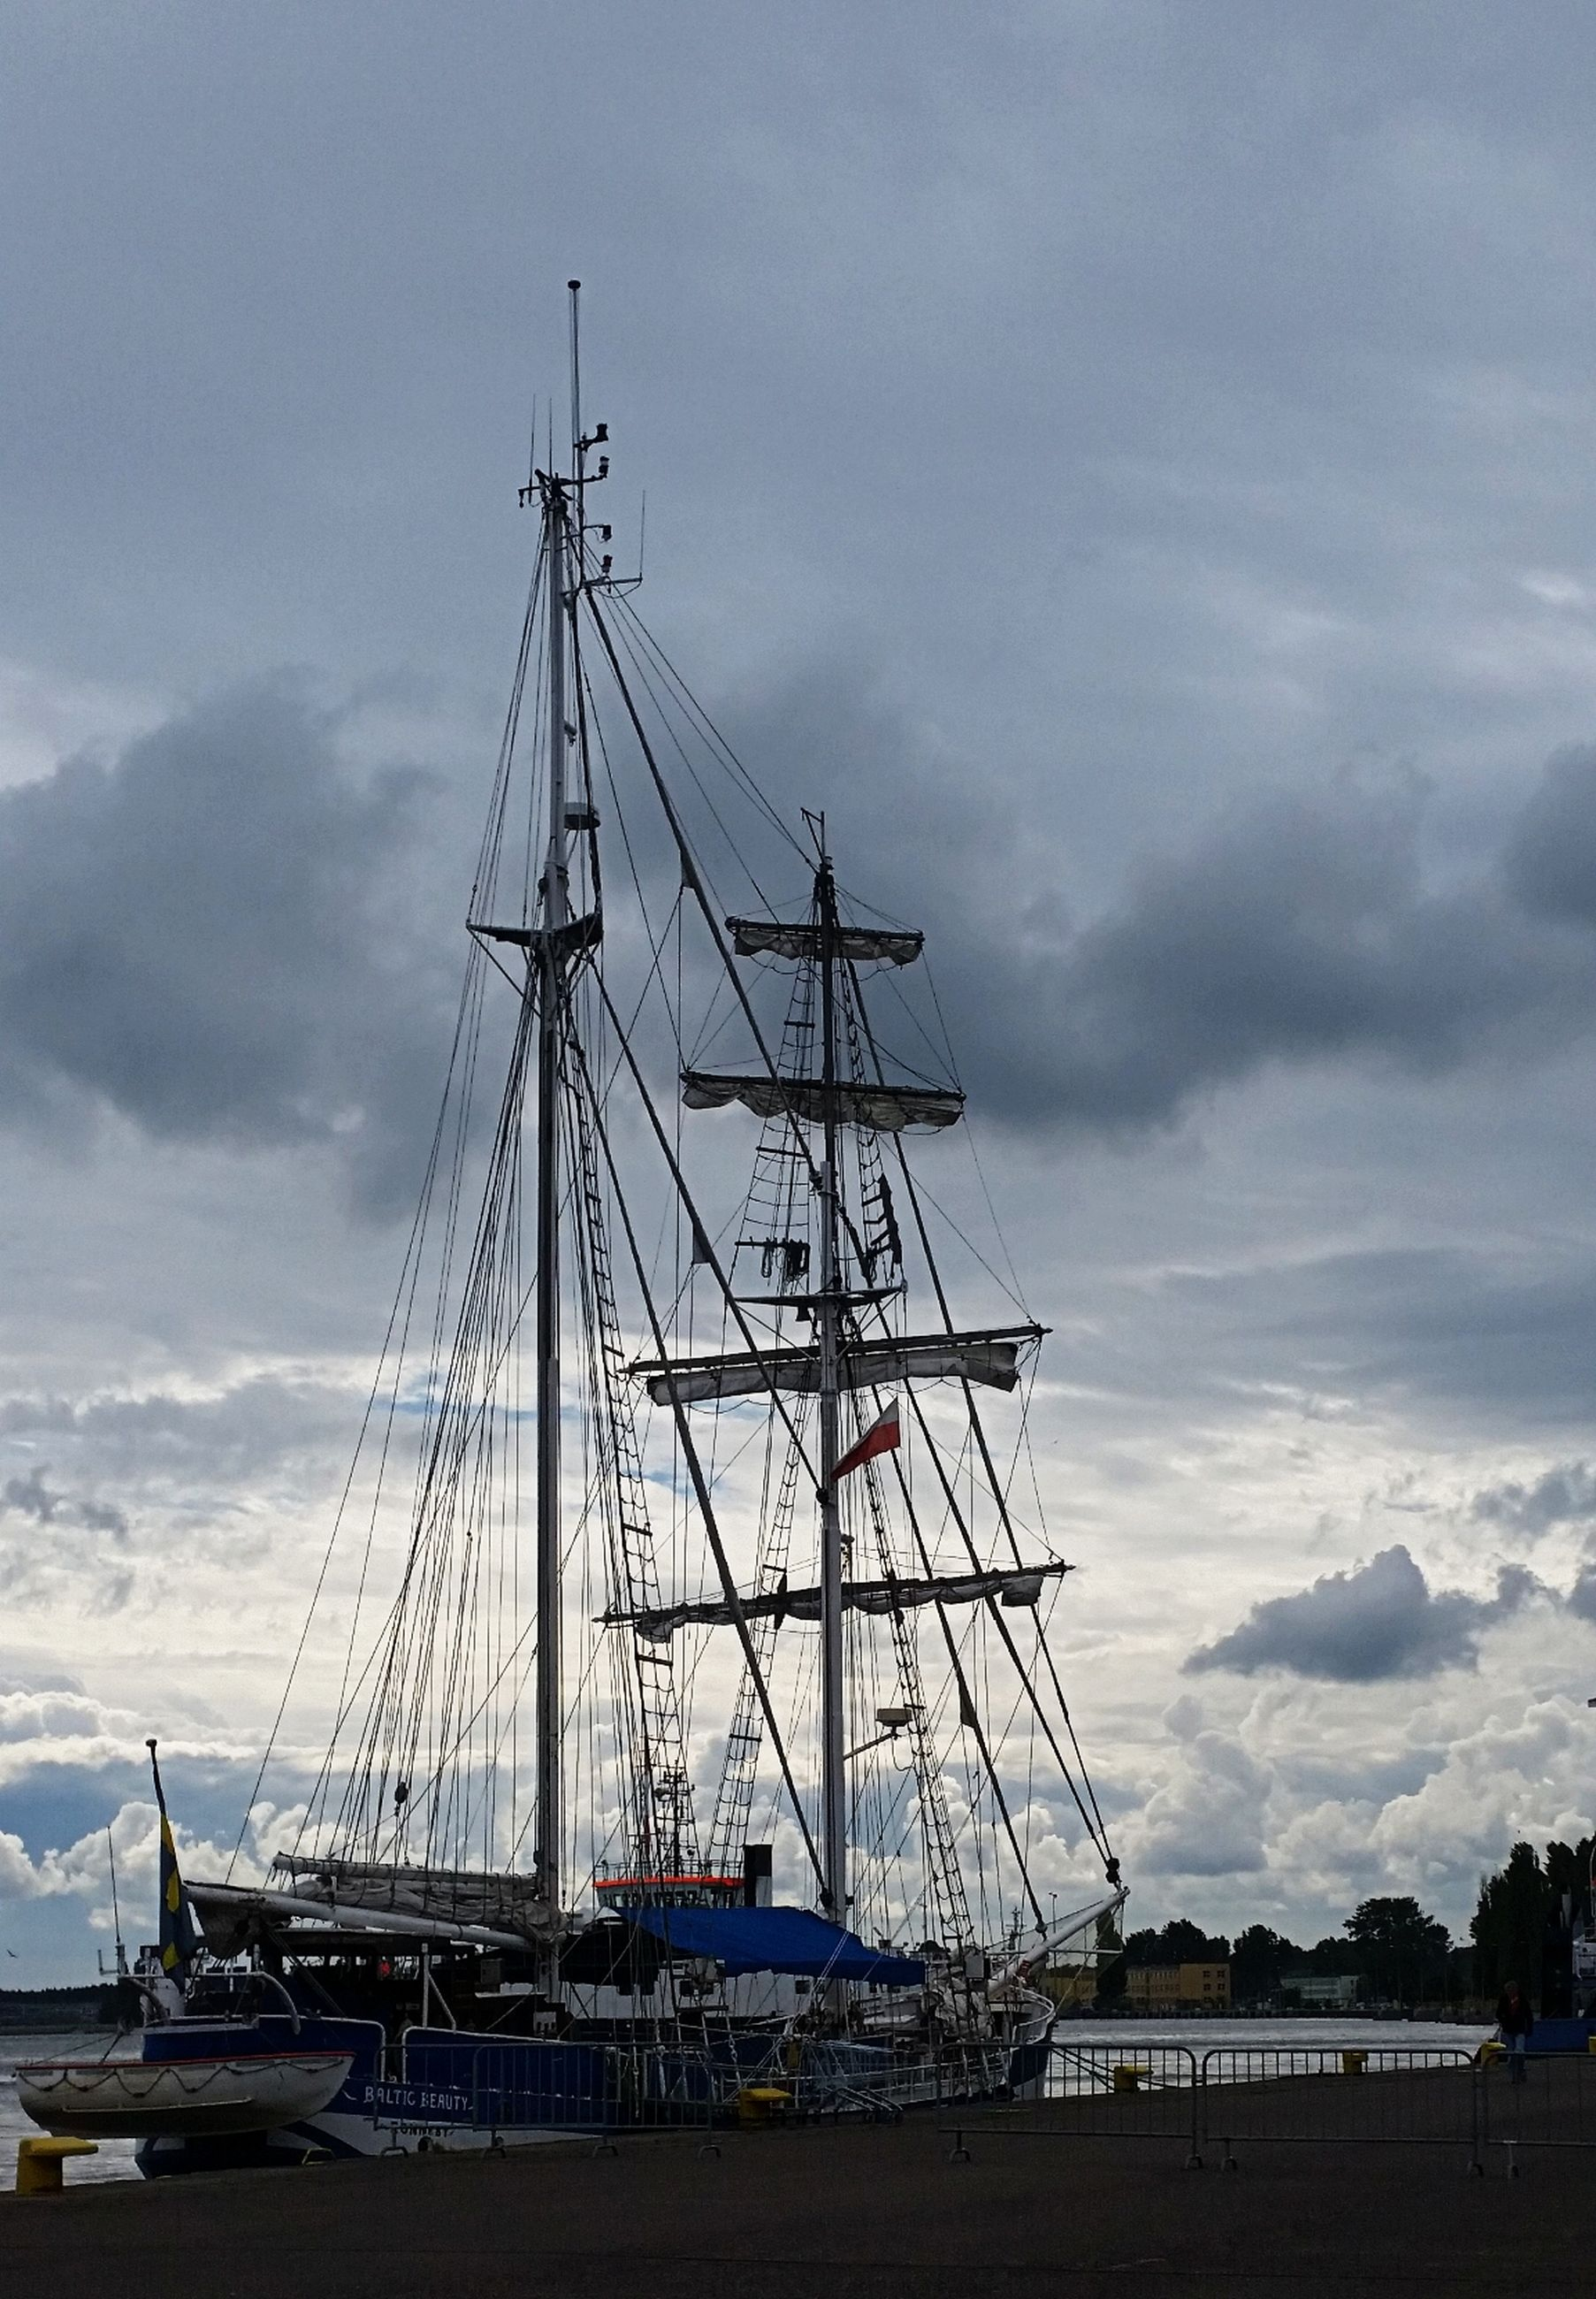 nautical vessel, transportation, mode of transport, mast, sky, moored, cloud - sky, cloud, nature, day, ship, cloudy, outdoors, tall - high, scenics, harbor, no people, non-urban scene, tranquility, tranquil scene, beauty in nature